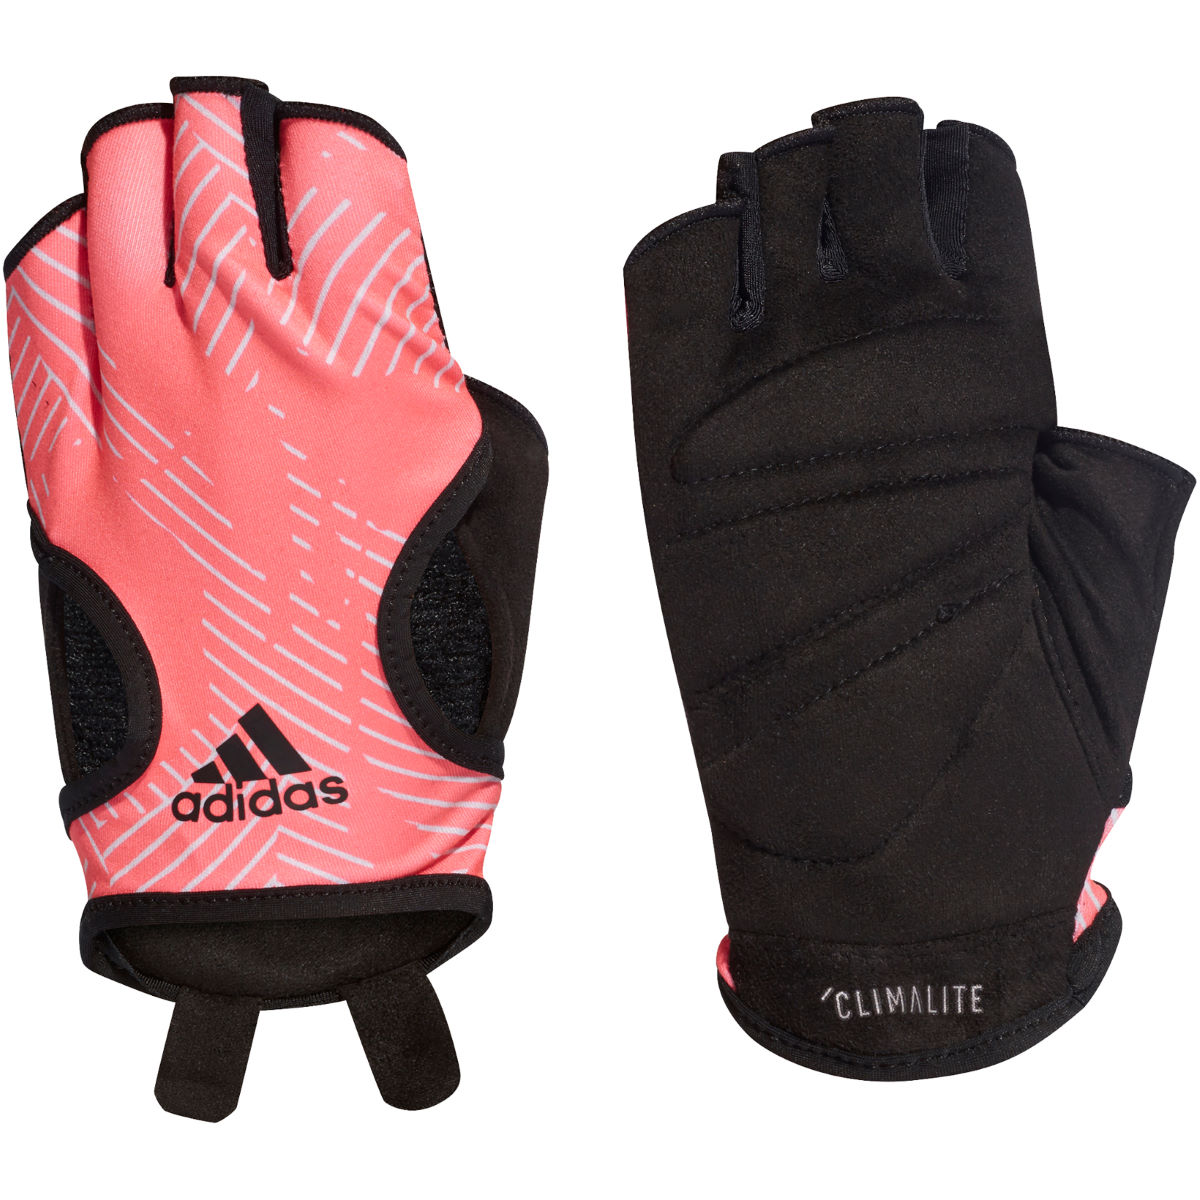 Image of adidas Training Climalite Gloves - Large Shock Red/Raw White/ | Gloves